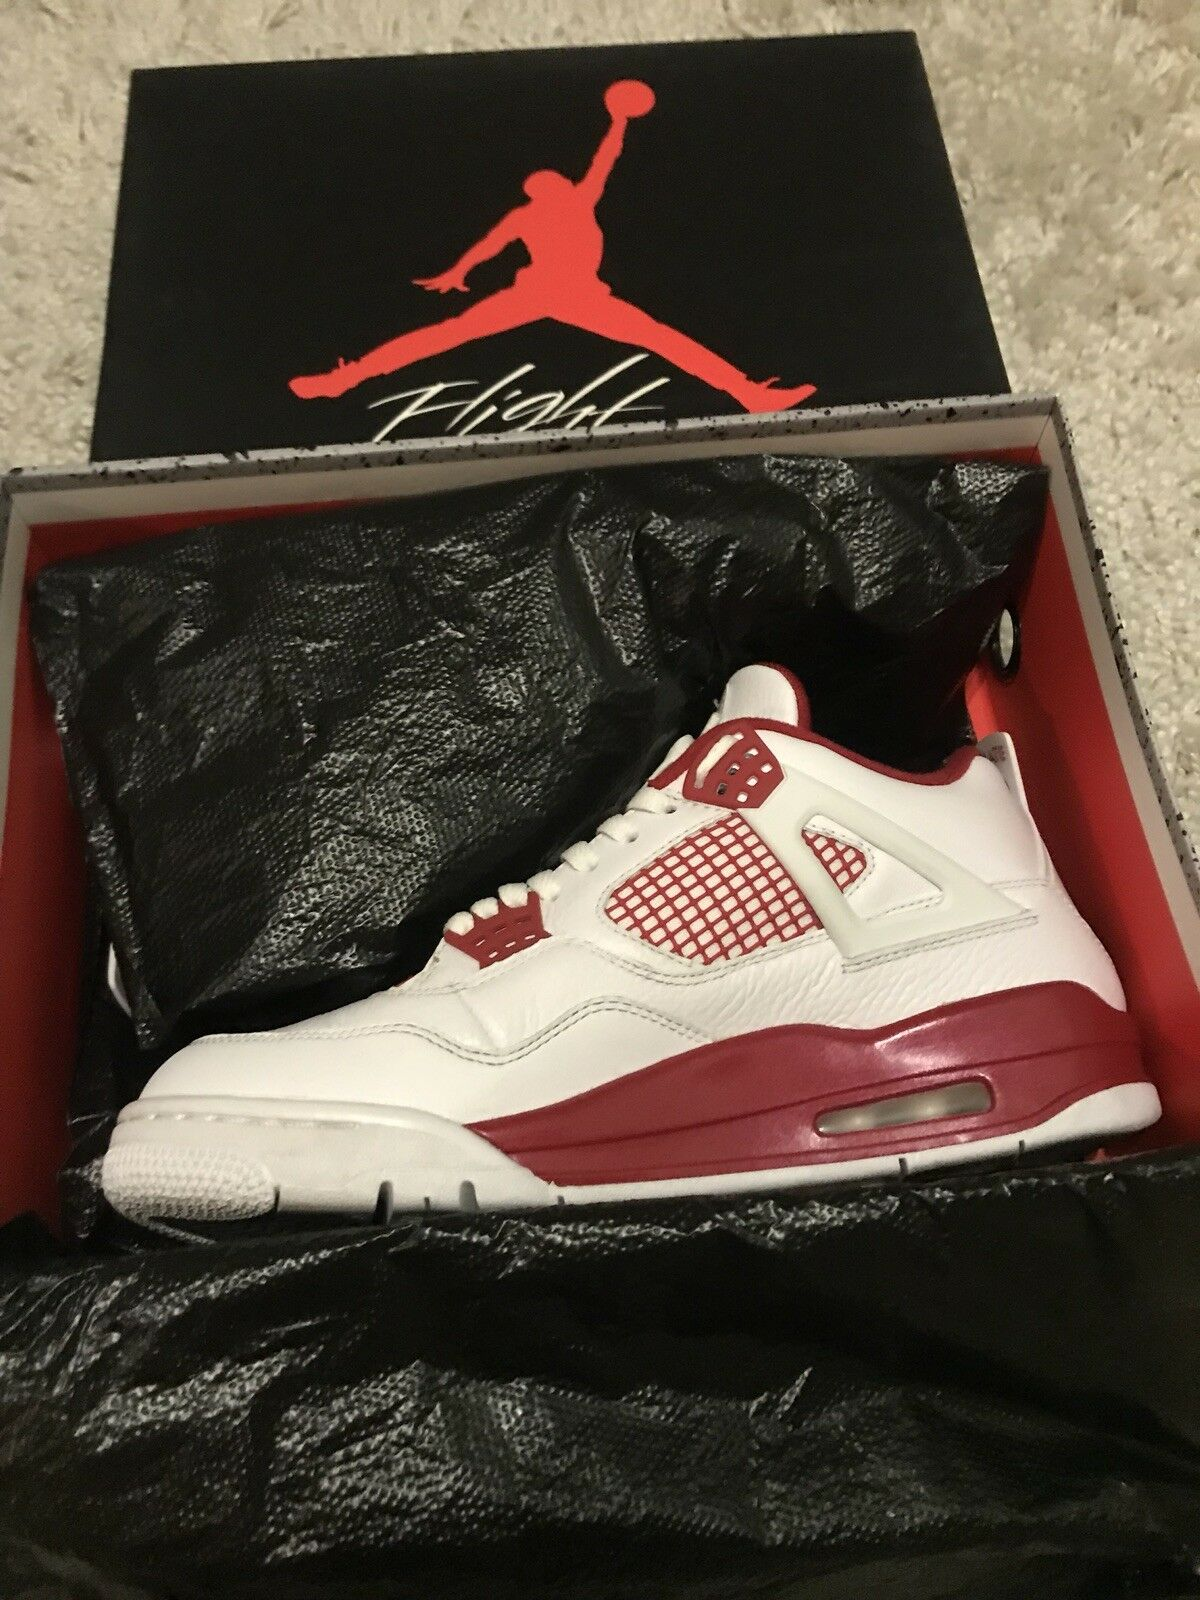 Nike Air Jordan 4 4 Jordan Retro OG bb7a0a